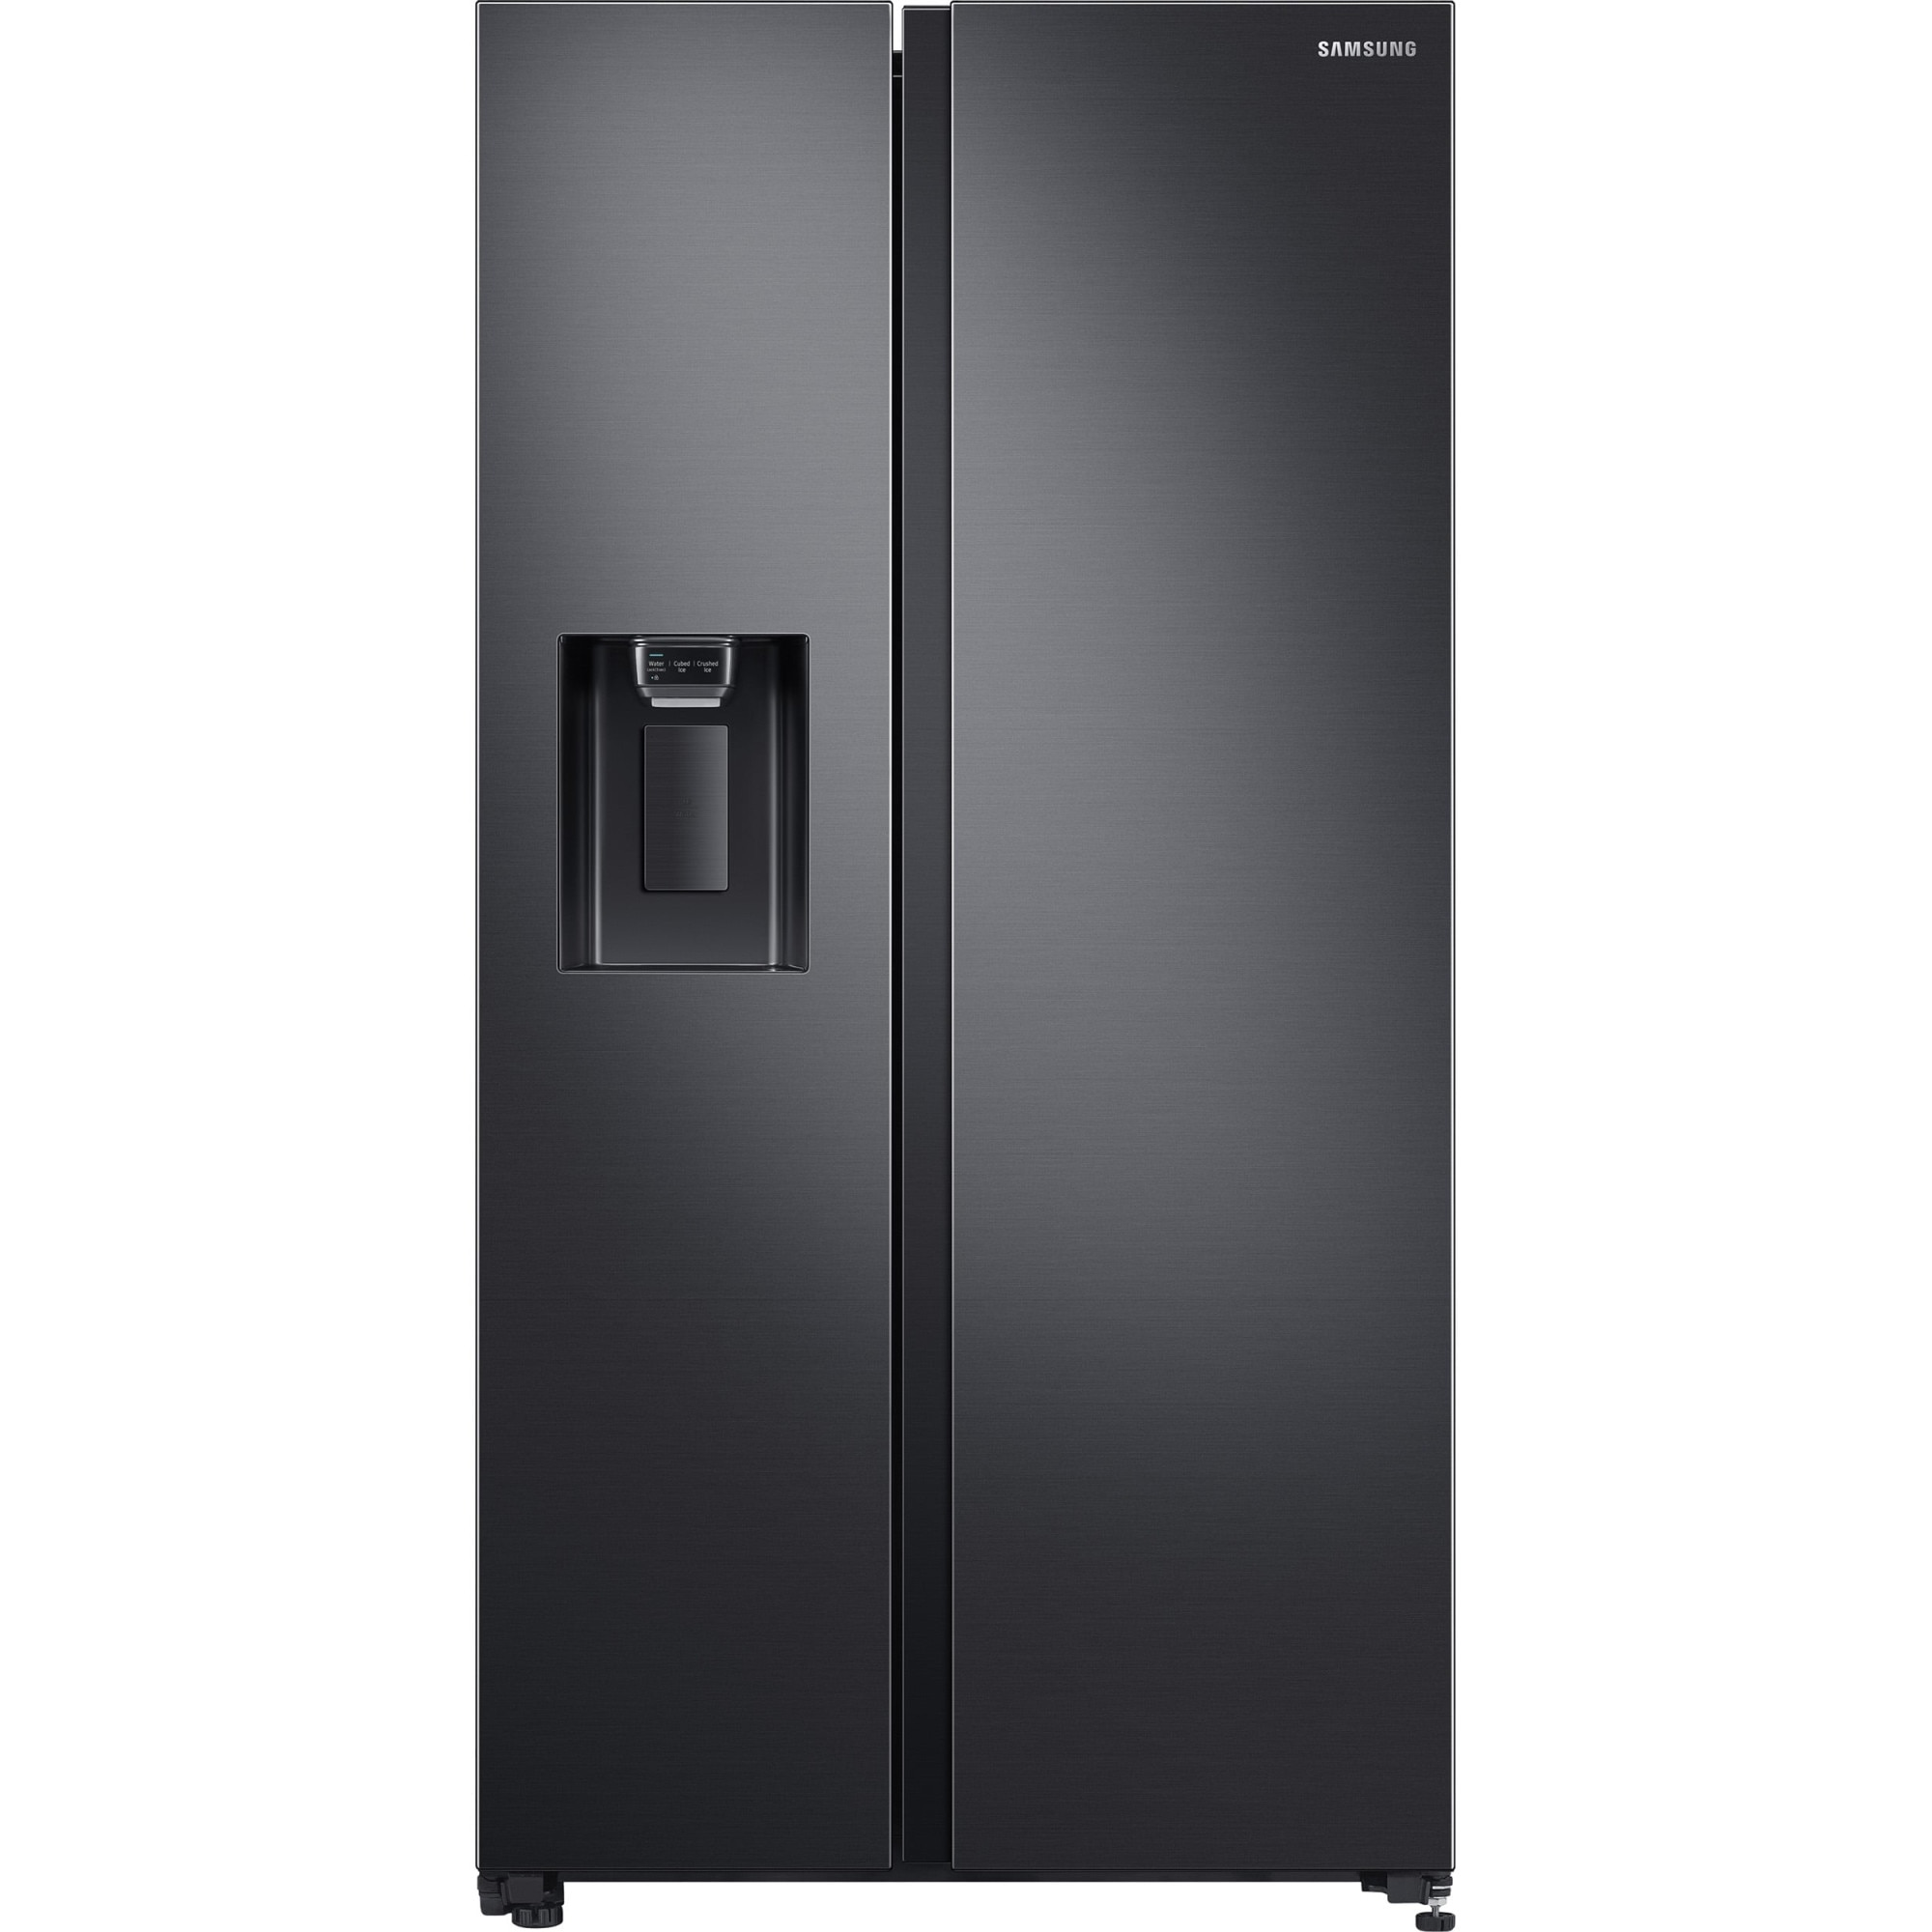 Fotografie Side By Side Samsung RS64R5302B4/EO, 617 l, Clasa F, Full No Frost, All around cooling, Tehnologie Space Max, Non-Plumbing, Dozator apa, Antracit